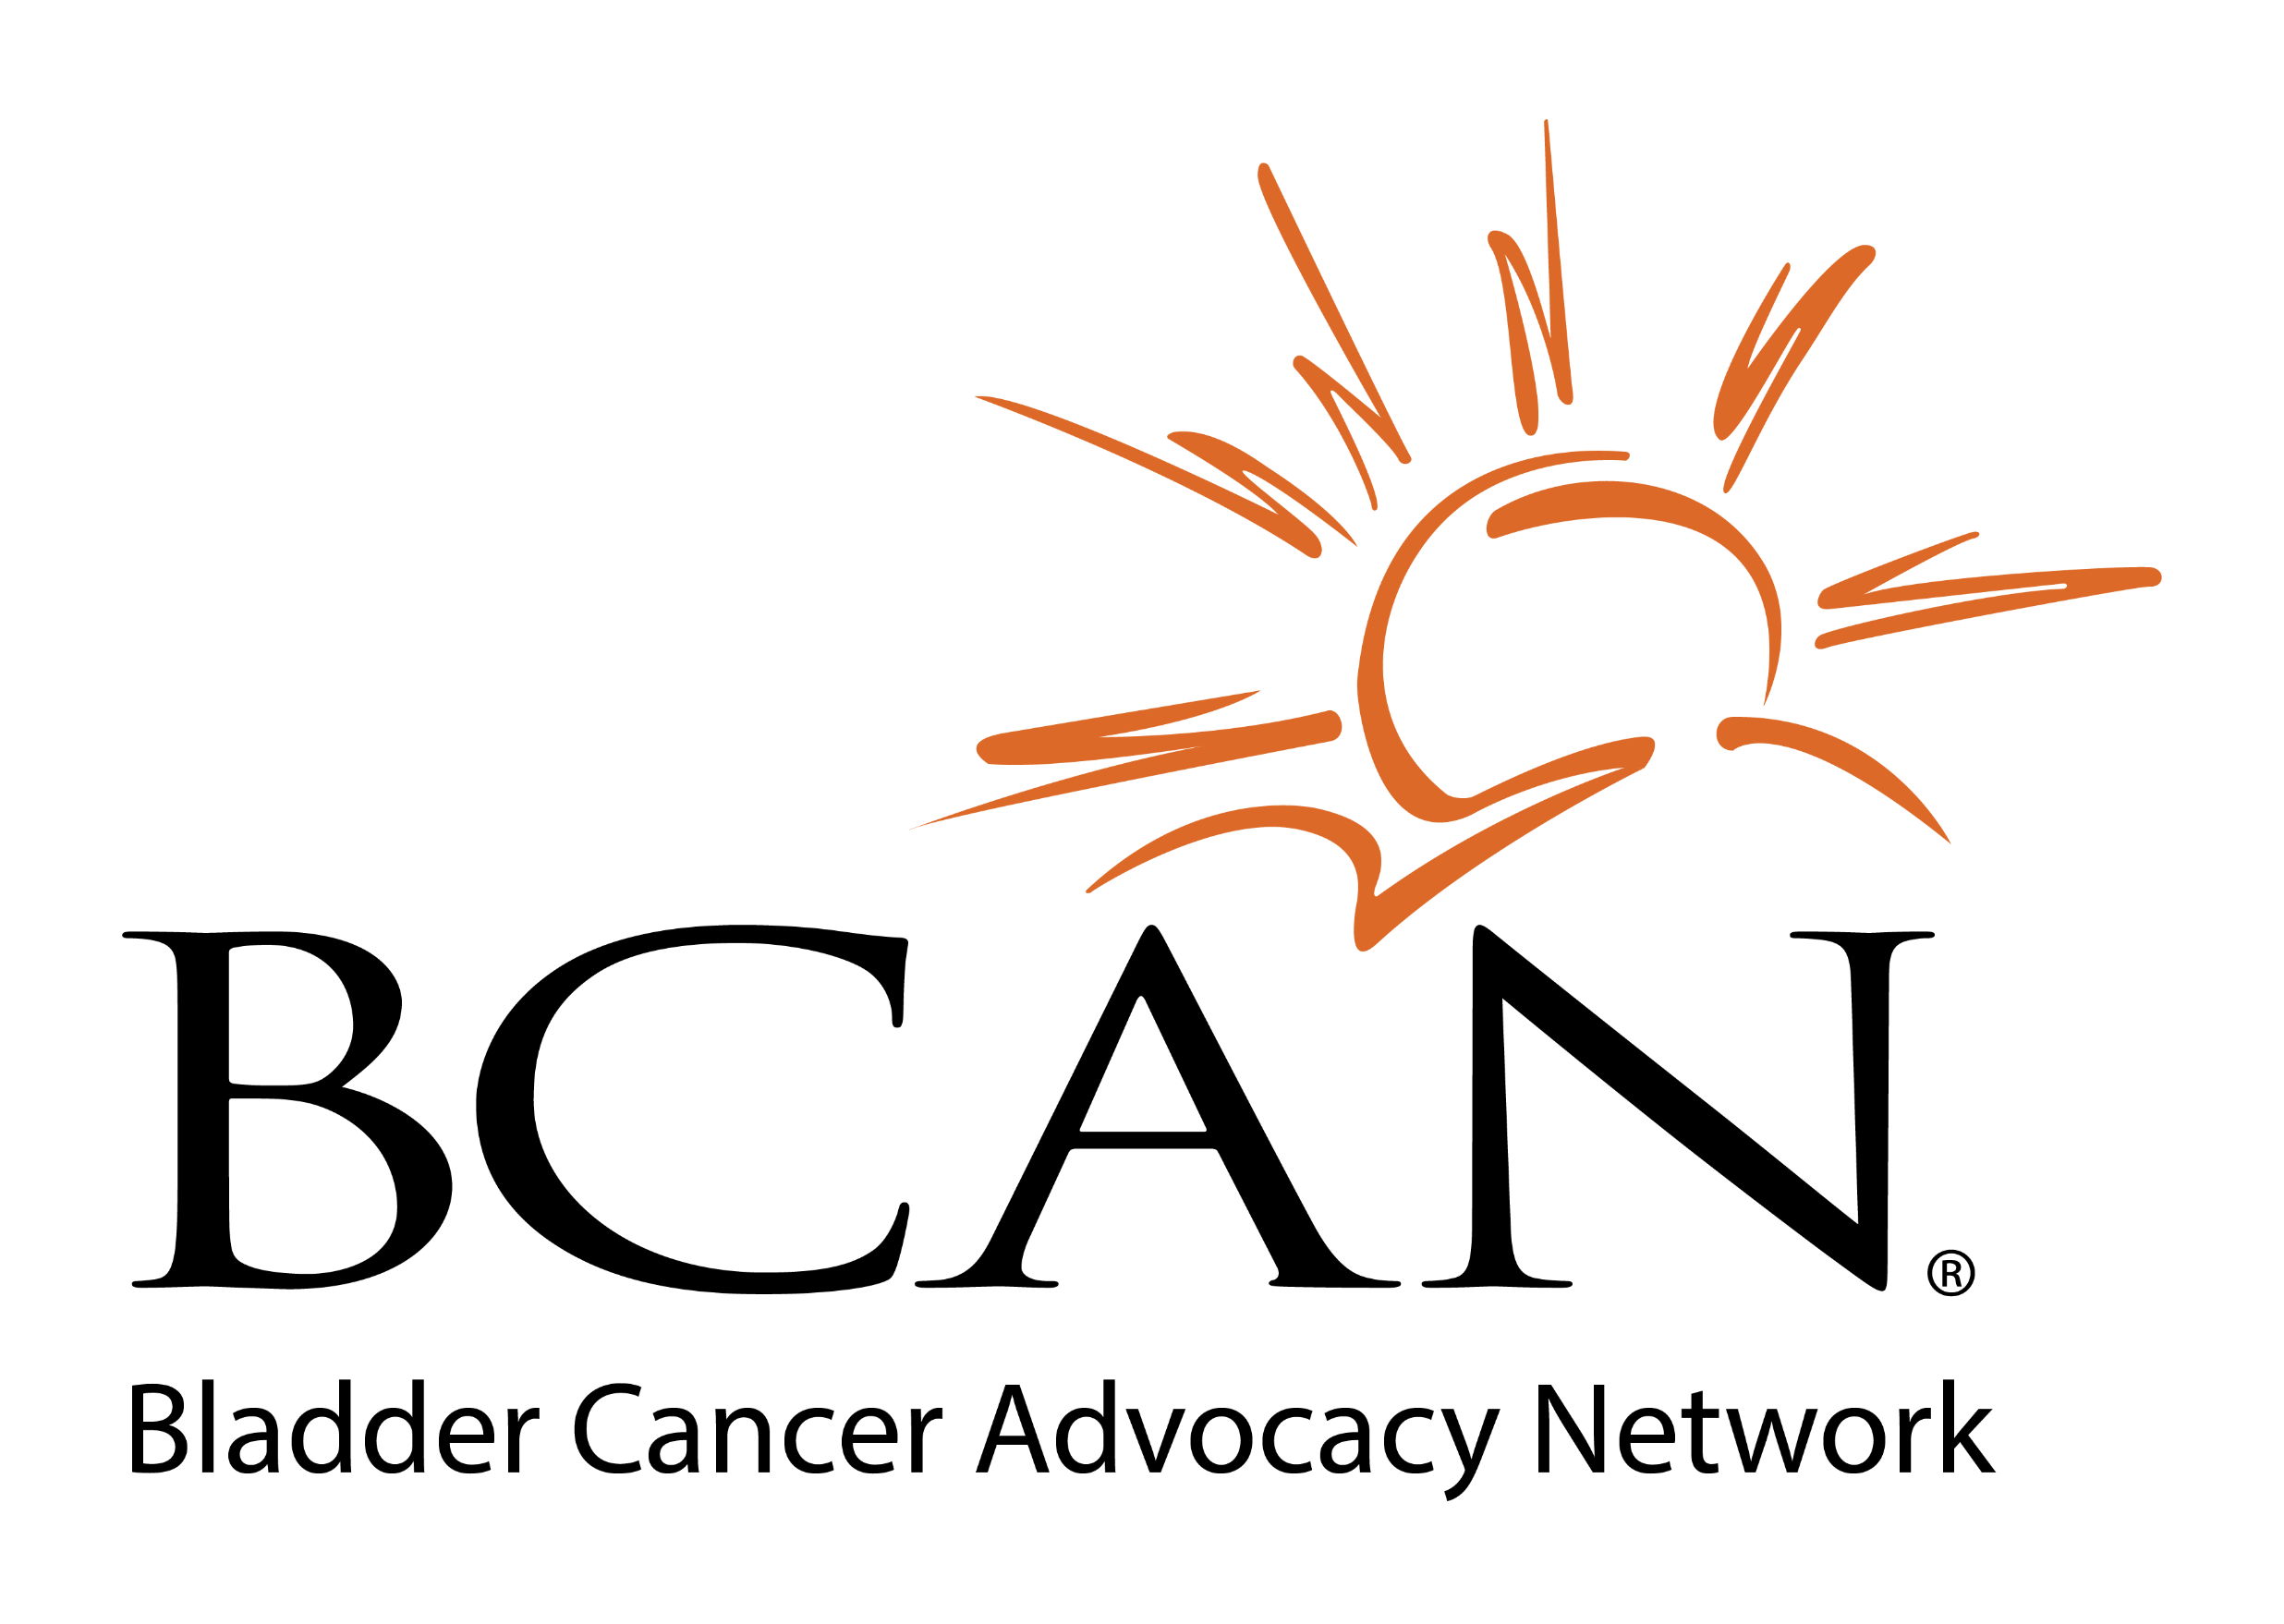 bladder cancer advocacy network (bcan) educates on all disease topics including enhanced cystoscopy